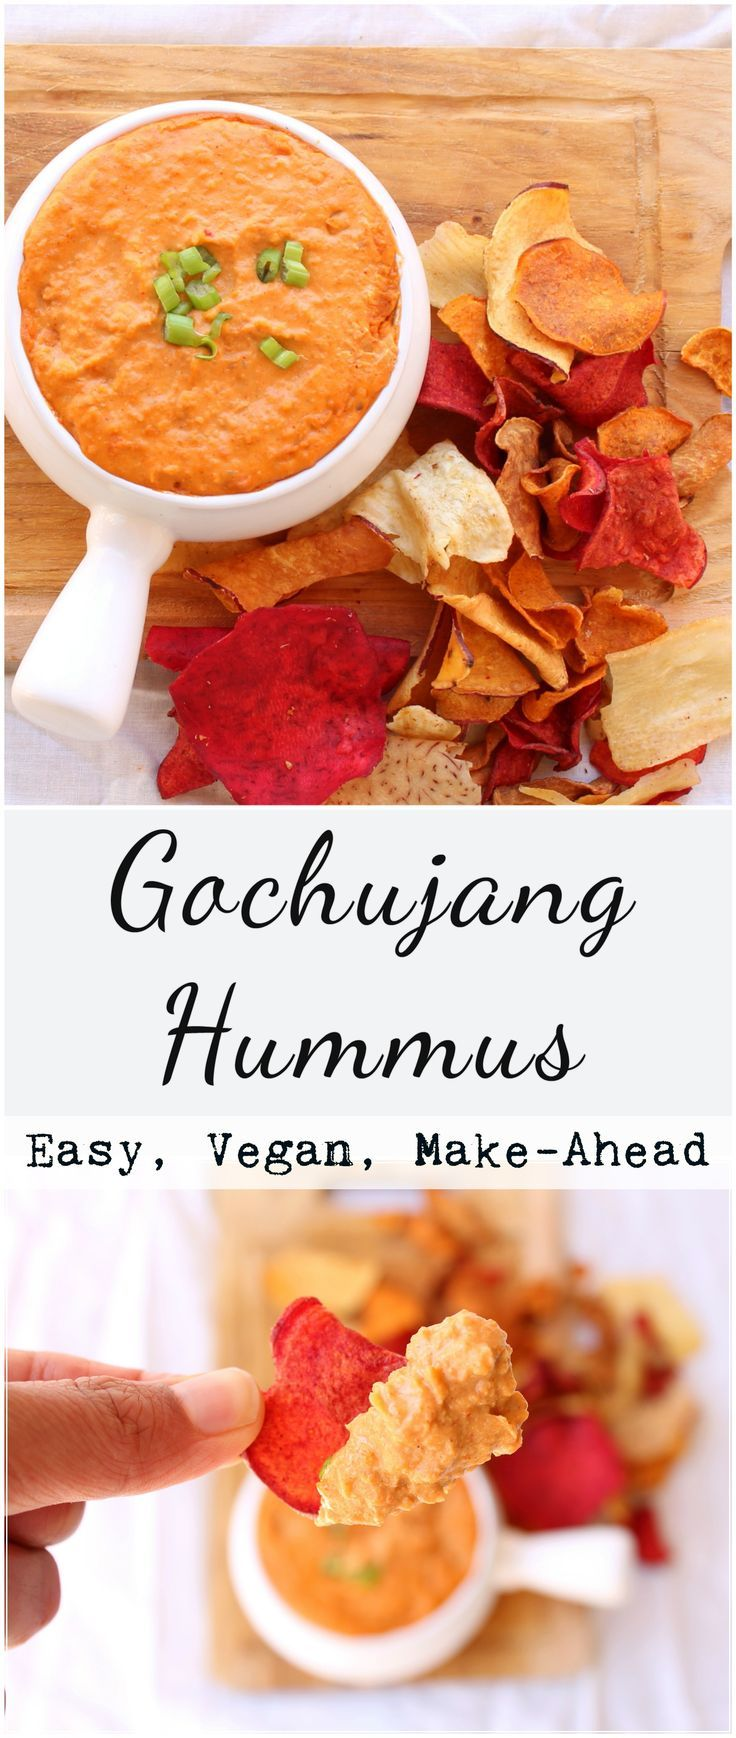 Take your regular hummus to the next level by adding Gochujang, a Korean fermented soy bean red chili paste. Naturally vegan, easy, and great for entertaining/snacking!